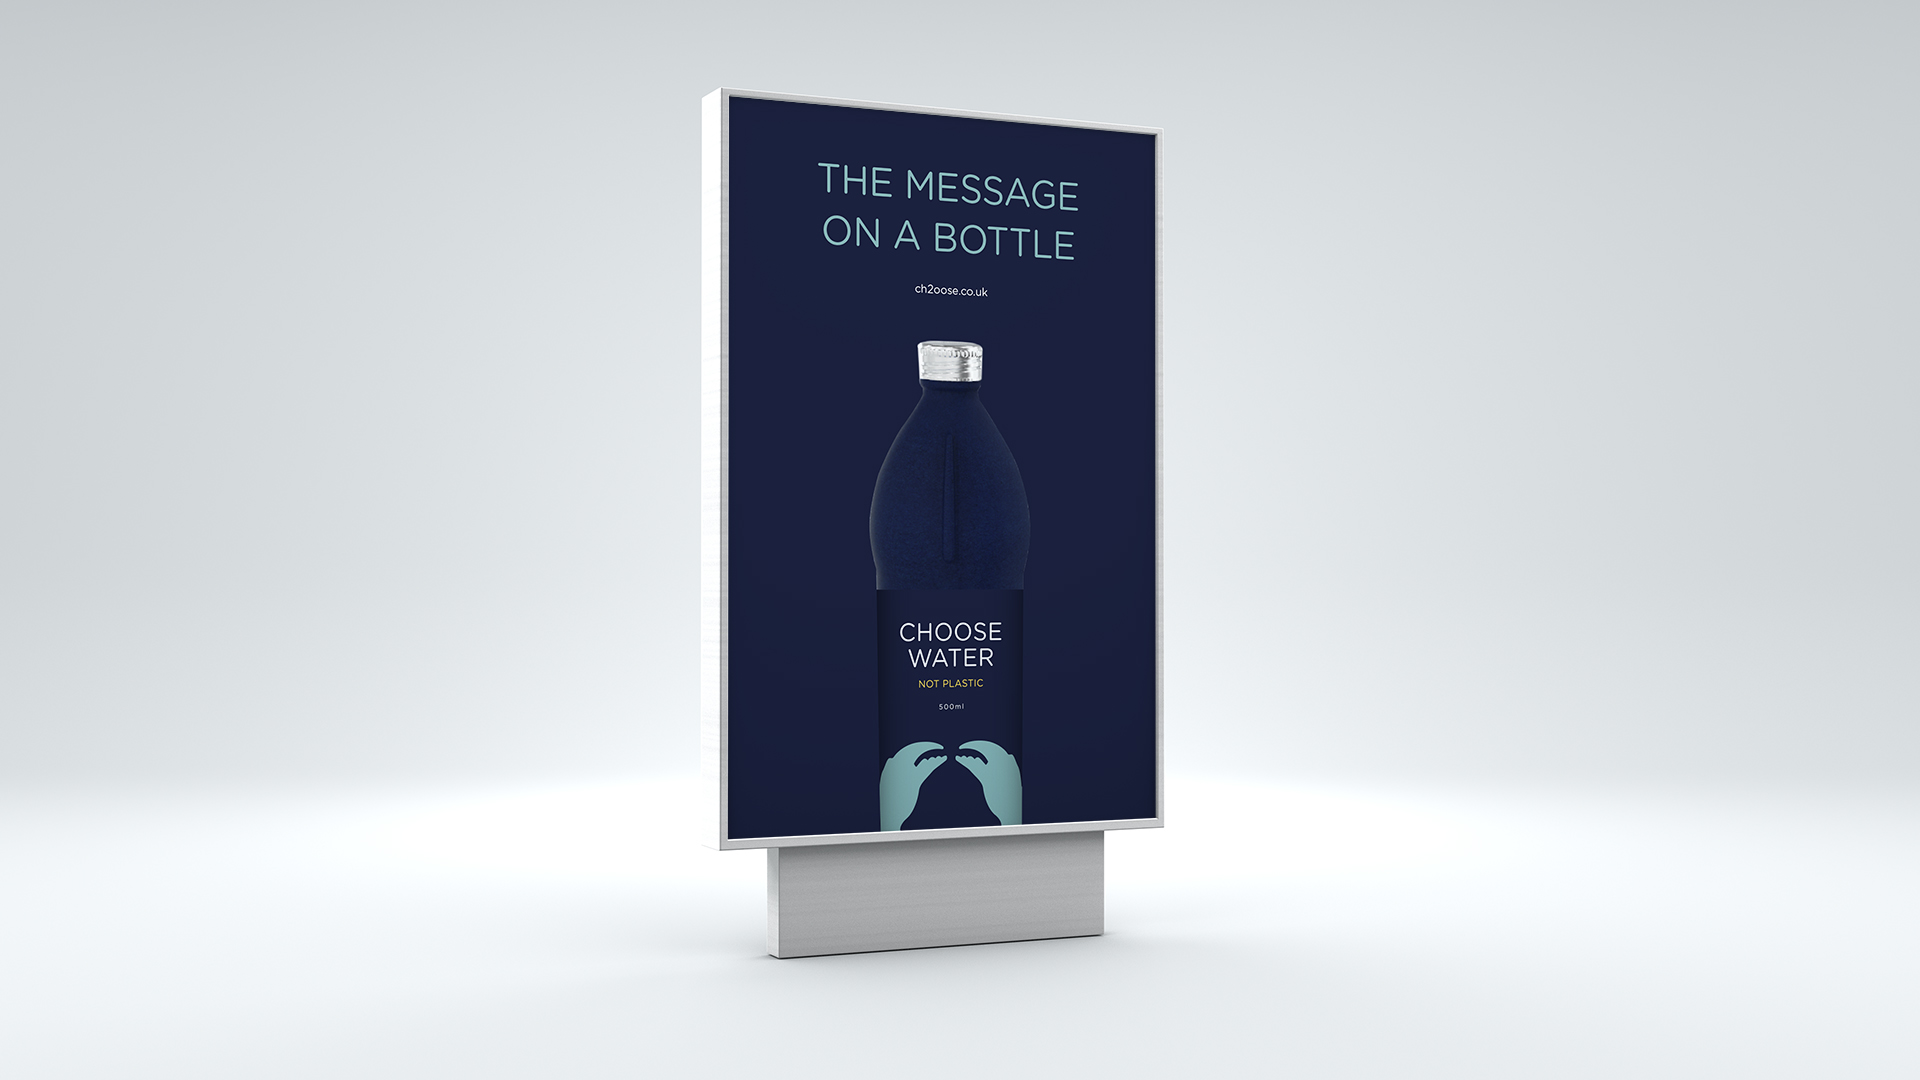 f0b0f45307 venturethree and Choose Water Unveil Branding for Plastic-Free Water ...